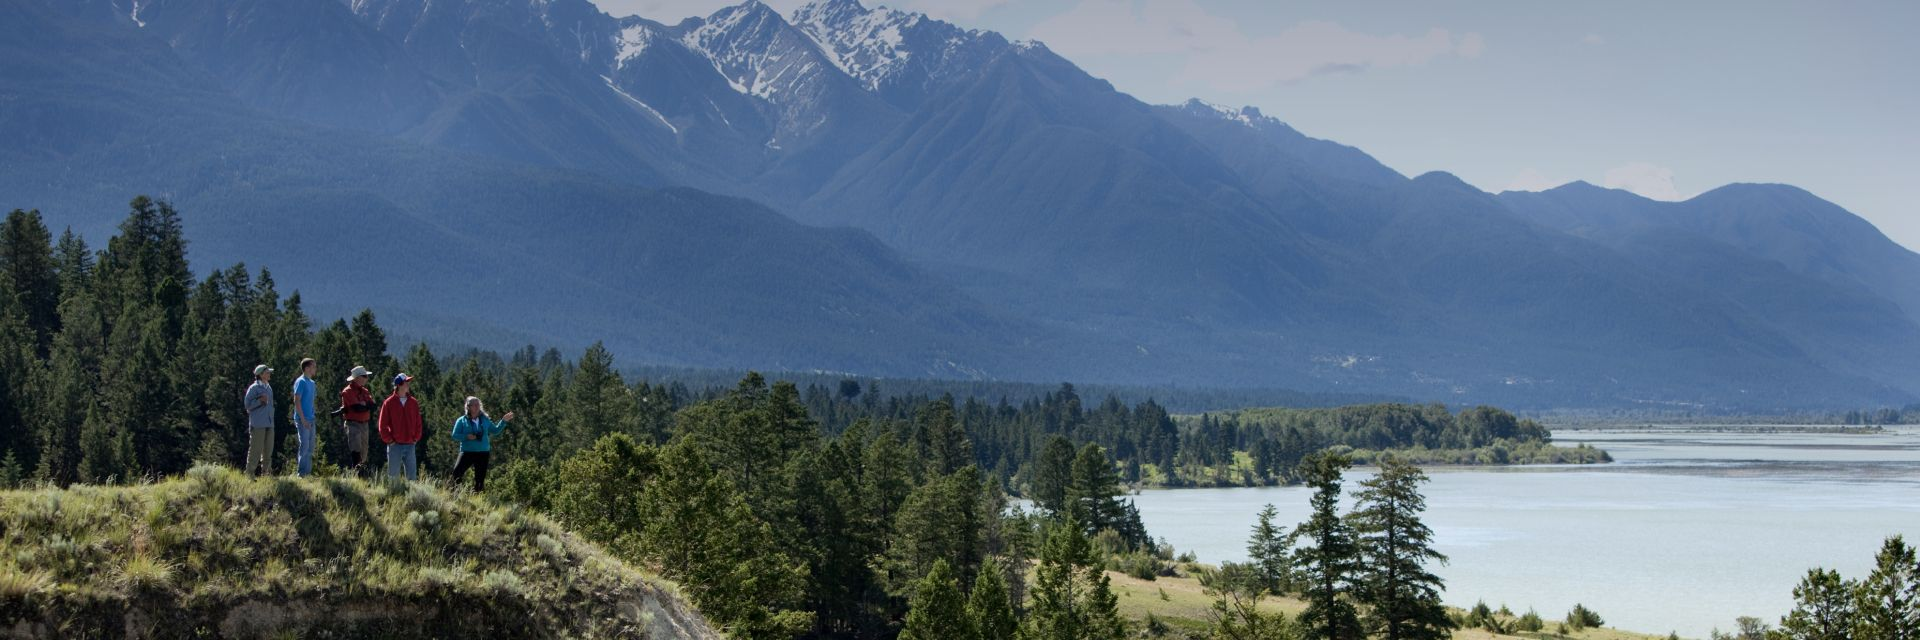 A landscape view of the Kootenay River and Kootenay Rockies in the distance